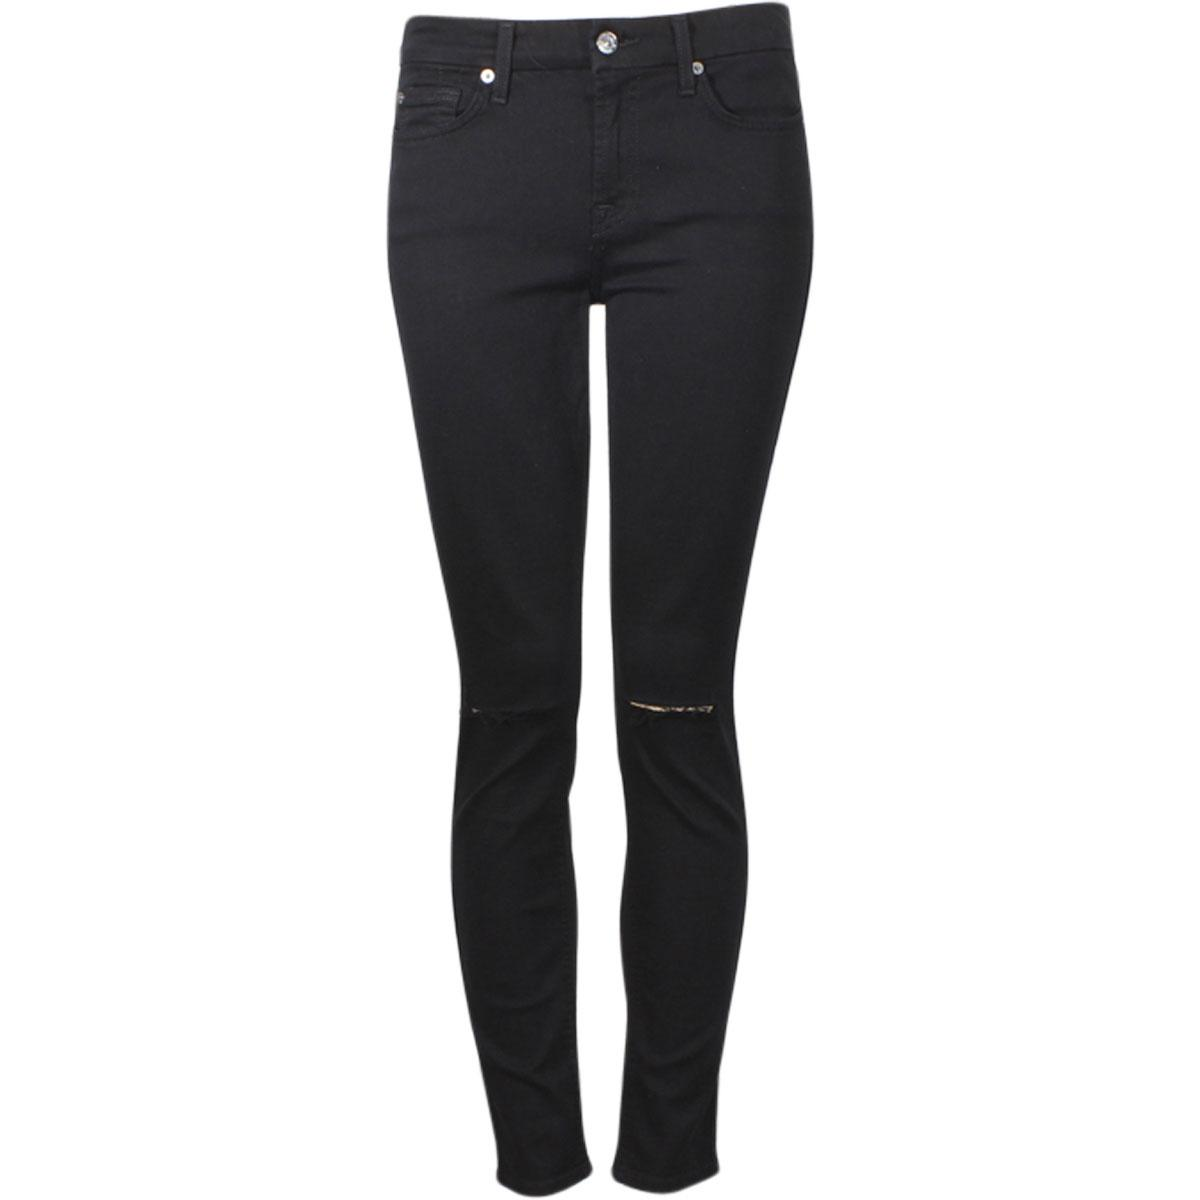 Image of 7 For All Mankind Women's (B)Air Denim Ankle Skinny With Destroy Cropped Jeans - Black - 26 (1/2)